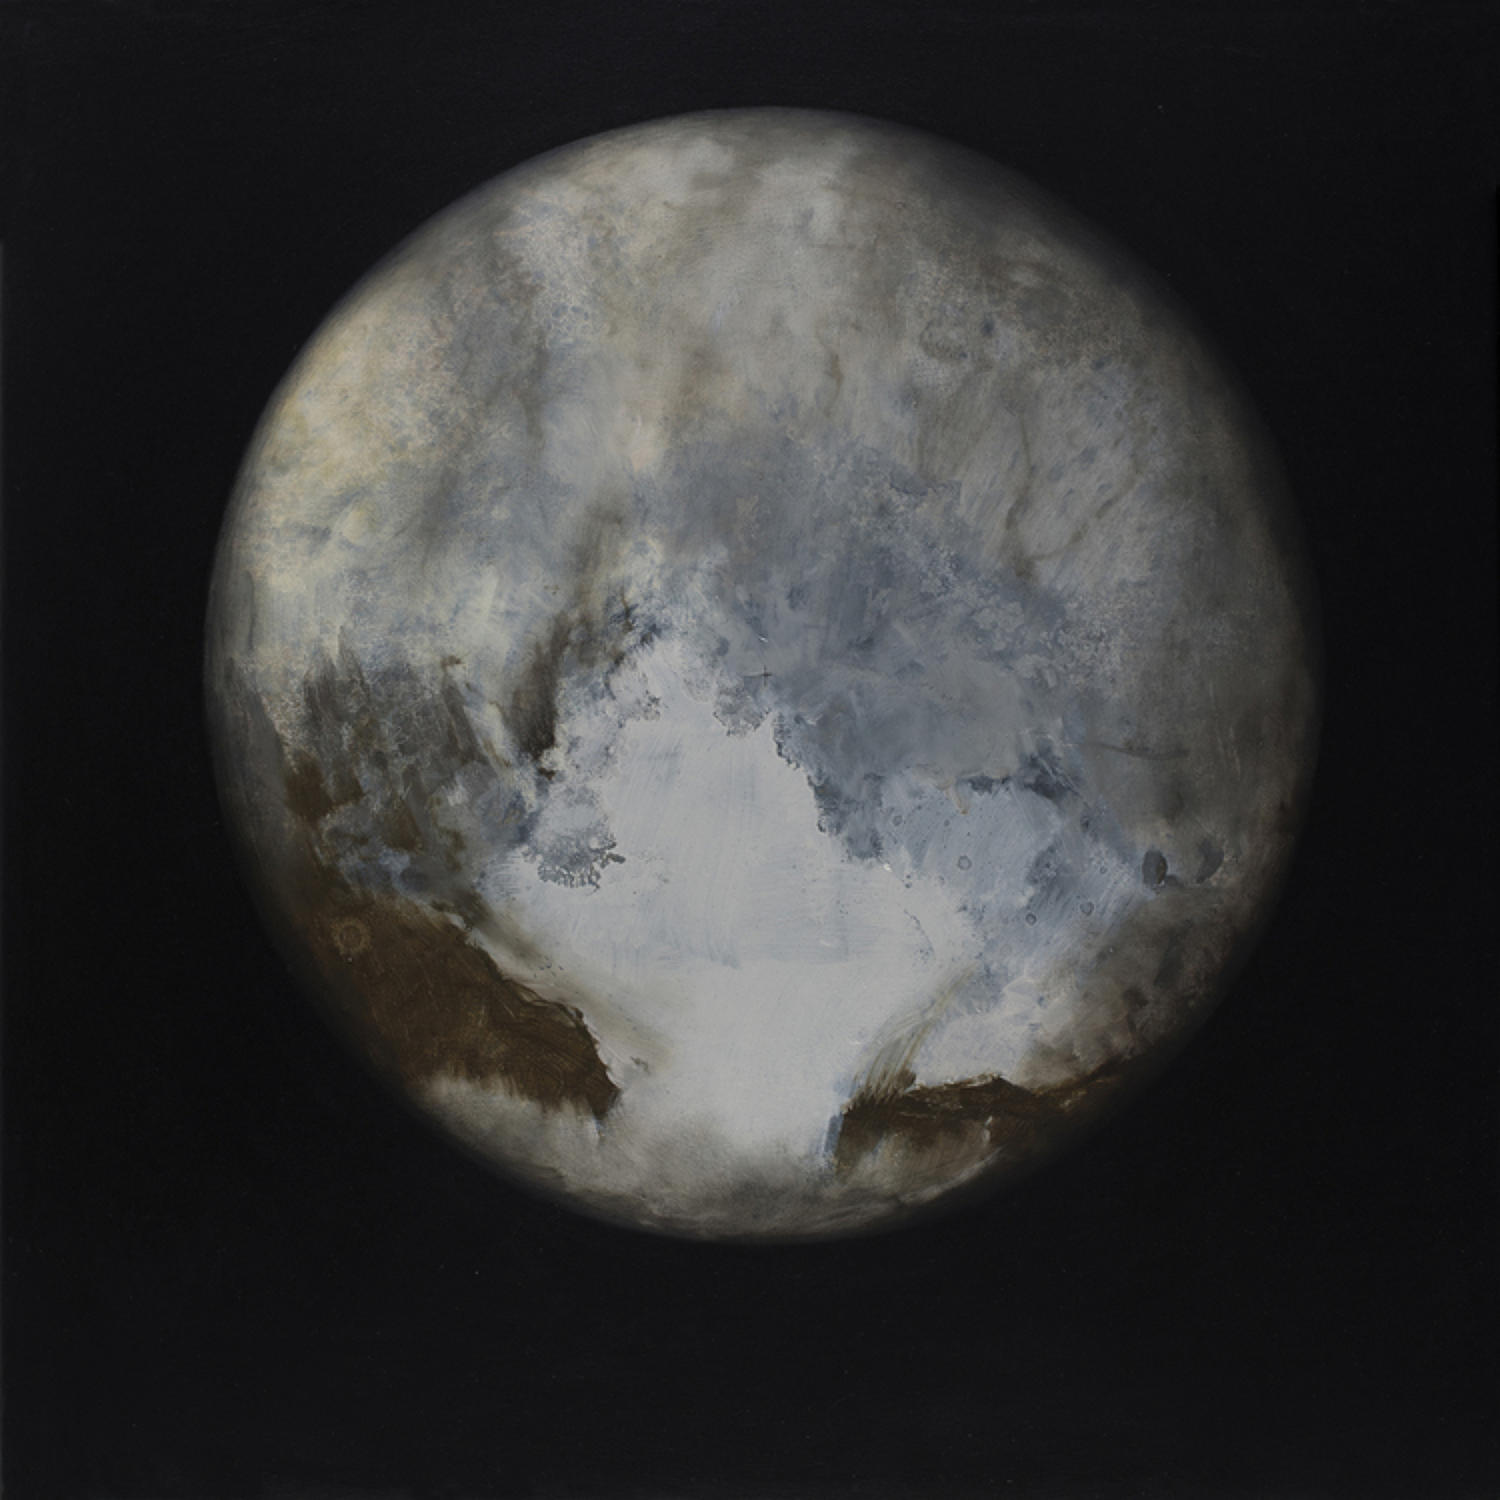 Patrick O'Donnell. New Horizons 1.